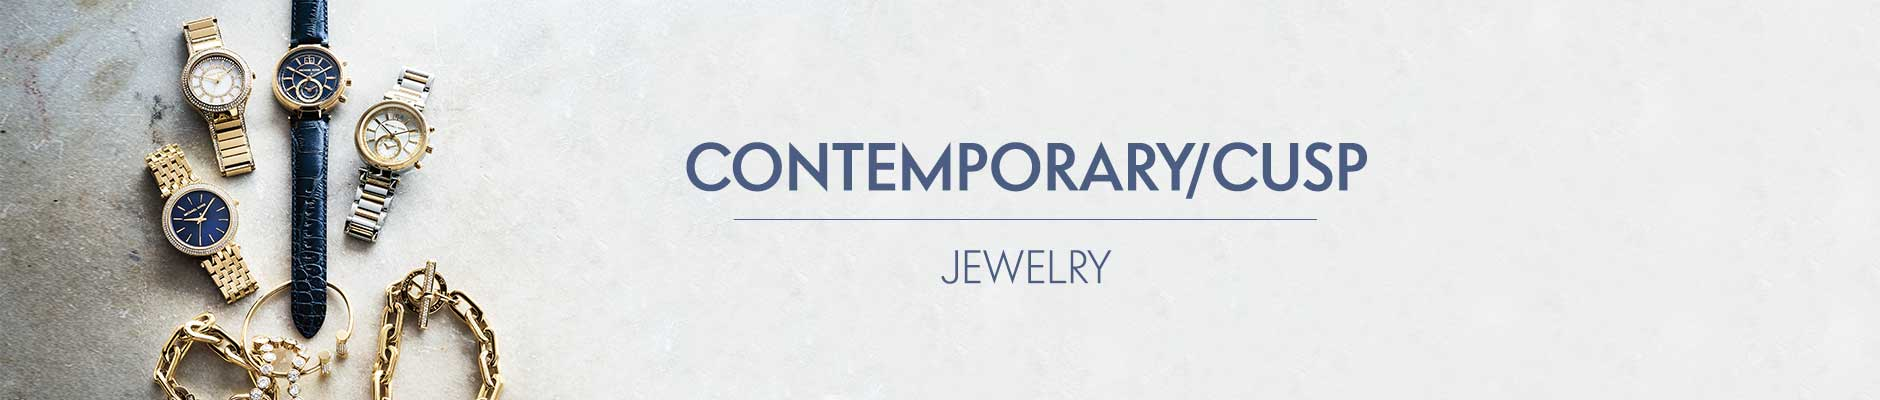 Contemporary/Cusp Jewelry